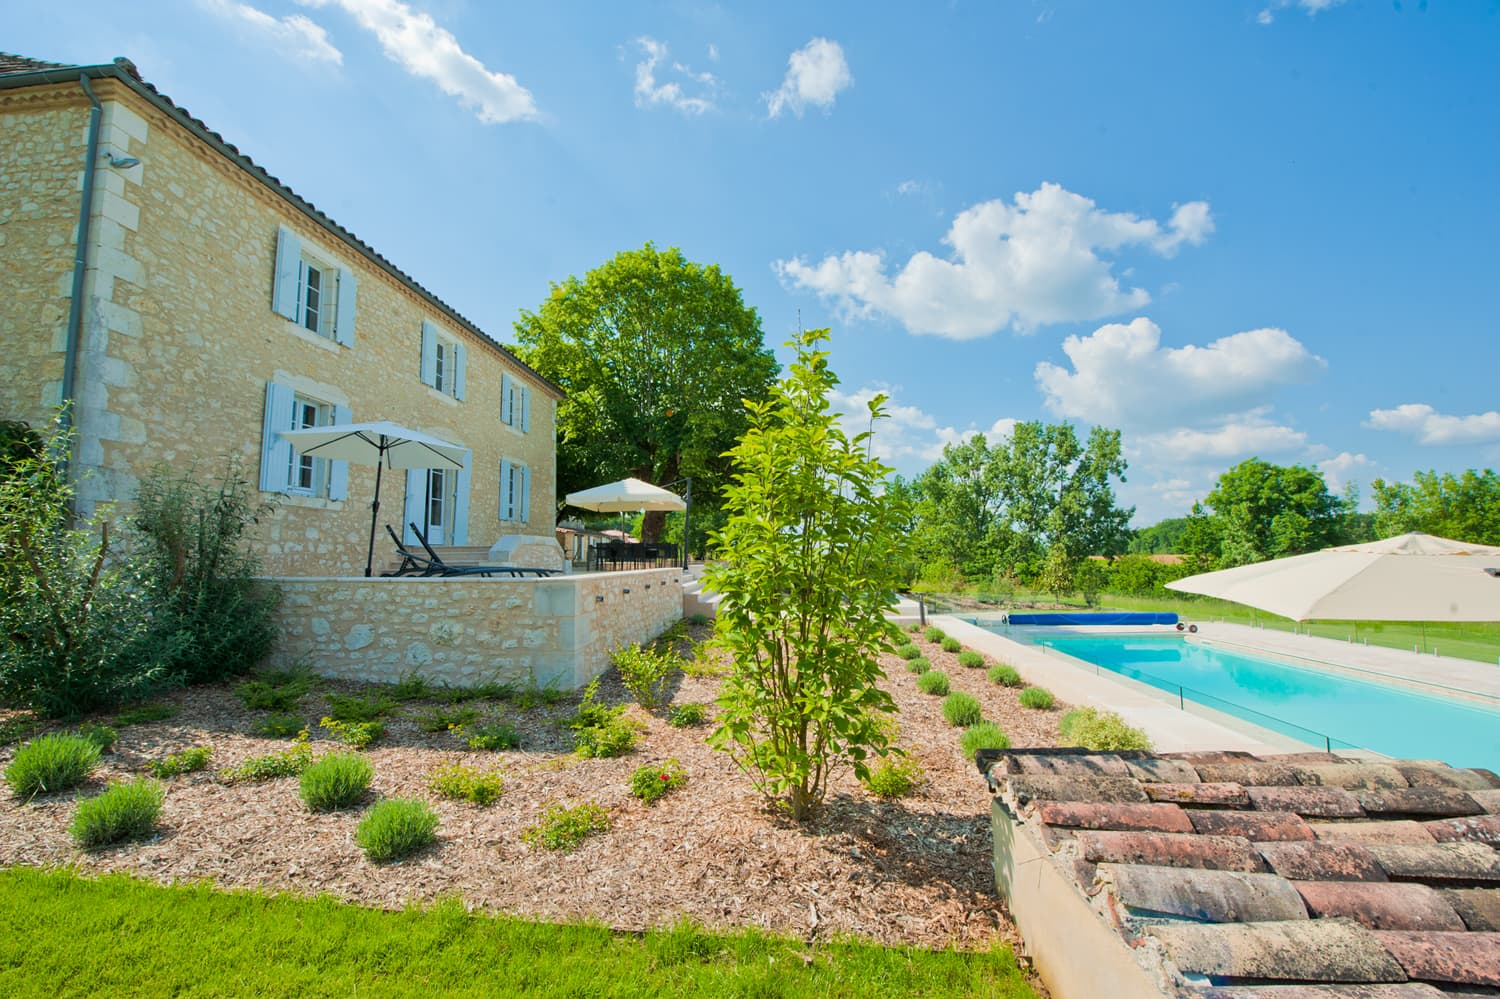 Dordogne rental home with private, heated pool